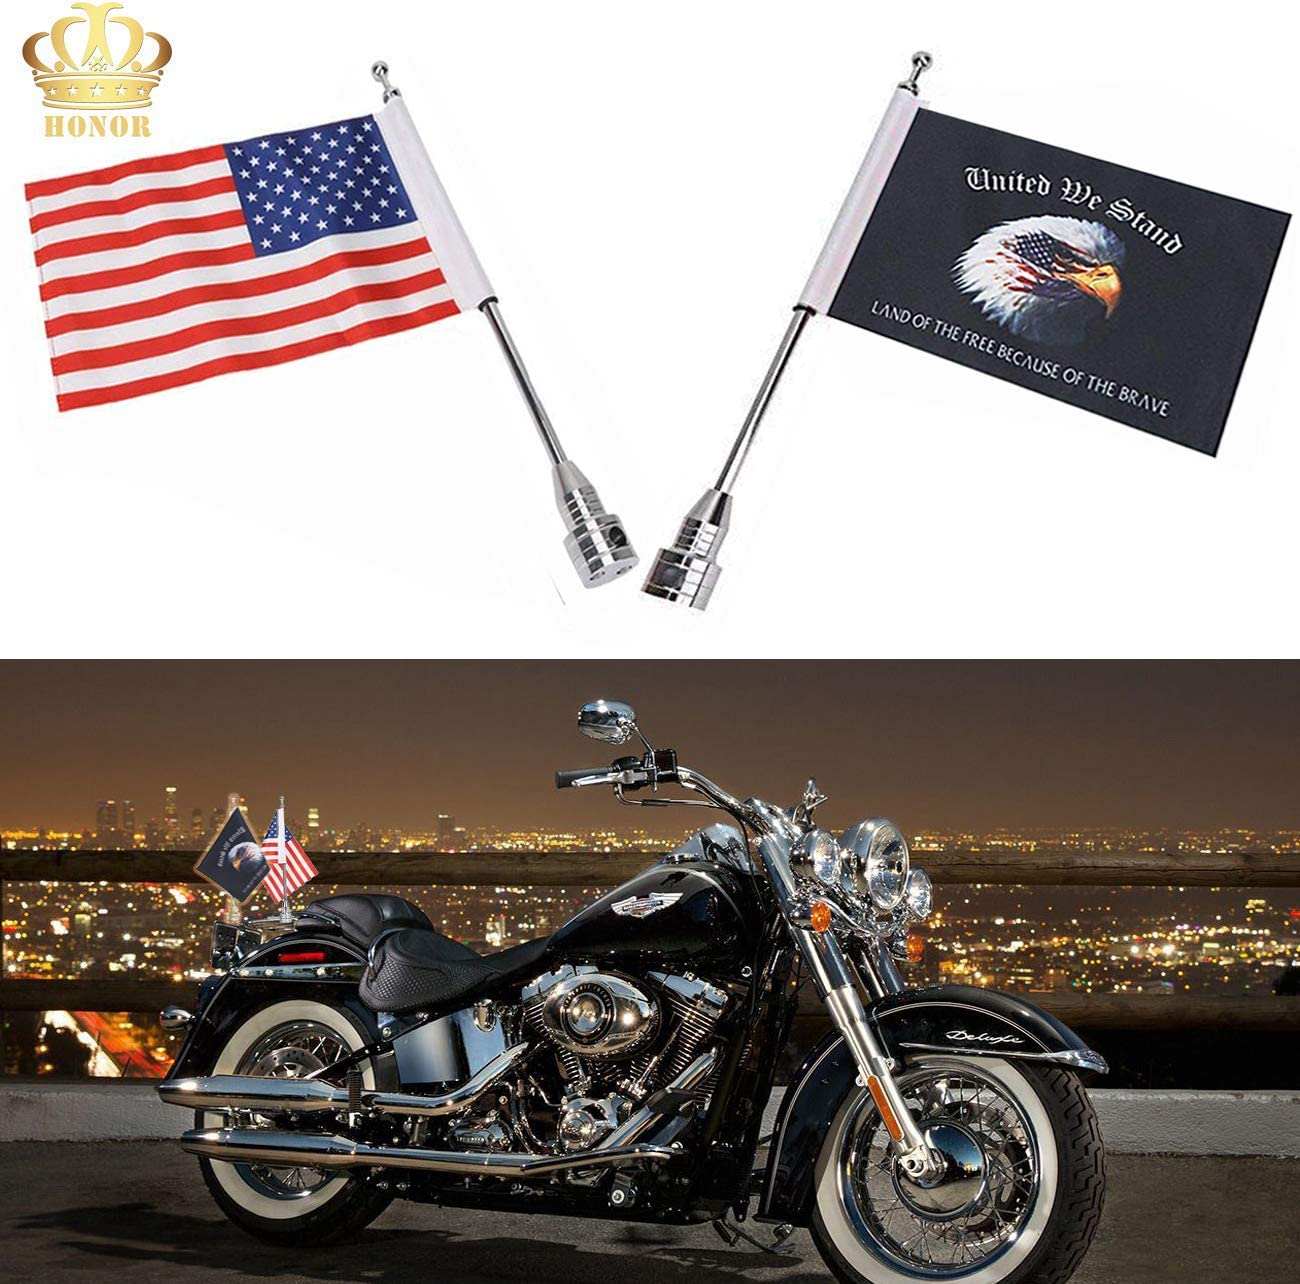 E-Most 6 x 9 Eagle American Flag for Harley Davidson Honda Goldwing CB VTX CBR Yamaha Motorcycle Flags